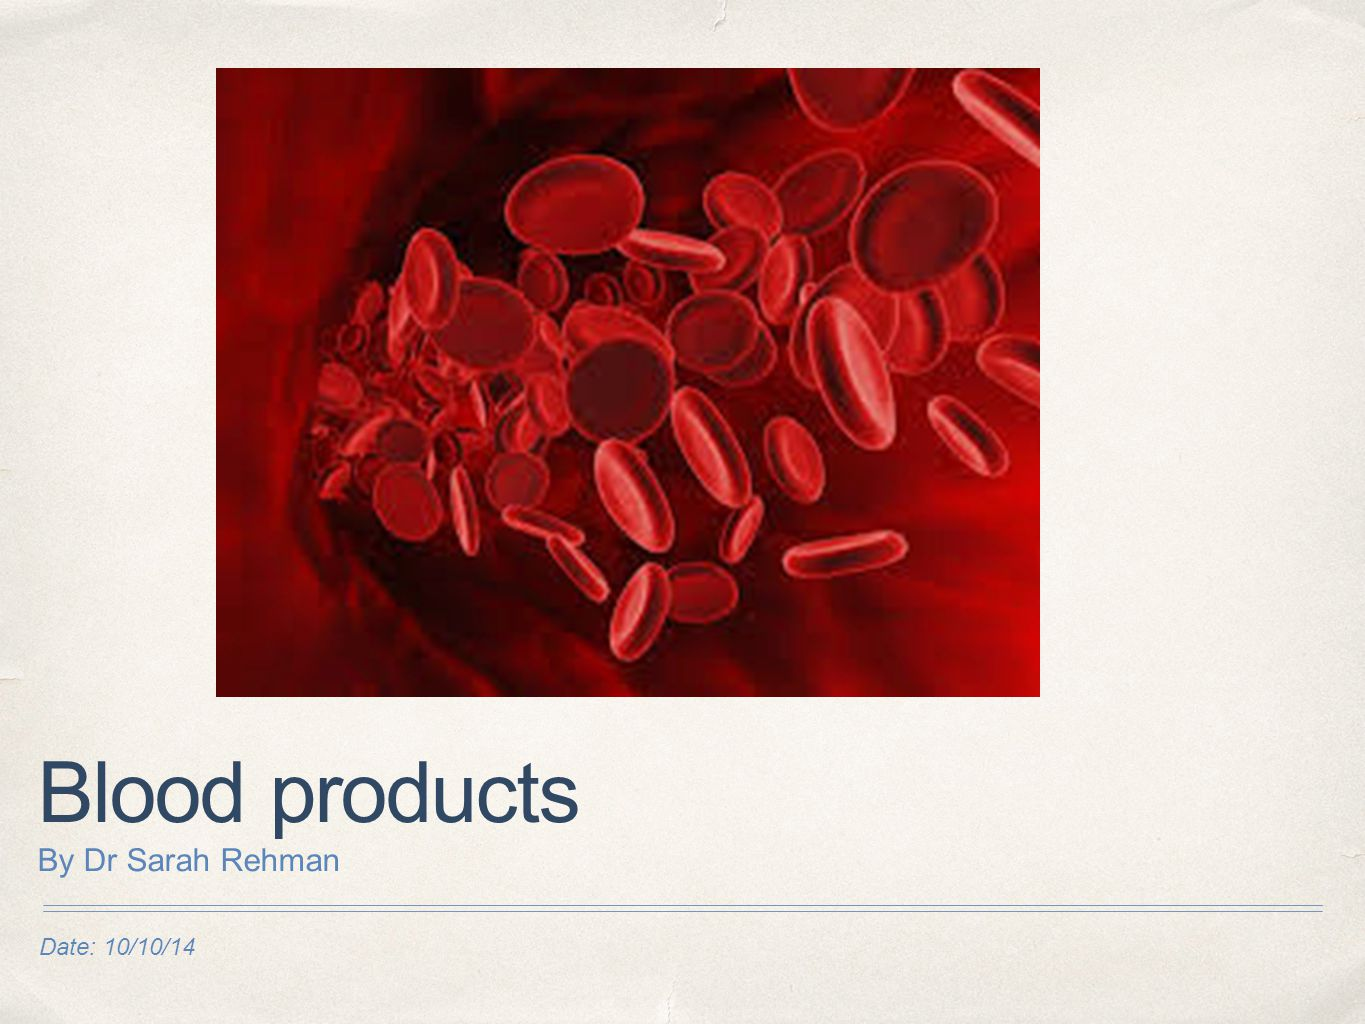 Date: 10/10/14 Blood products By Dr Sarah Rehman